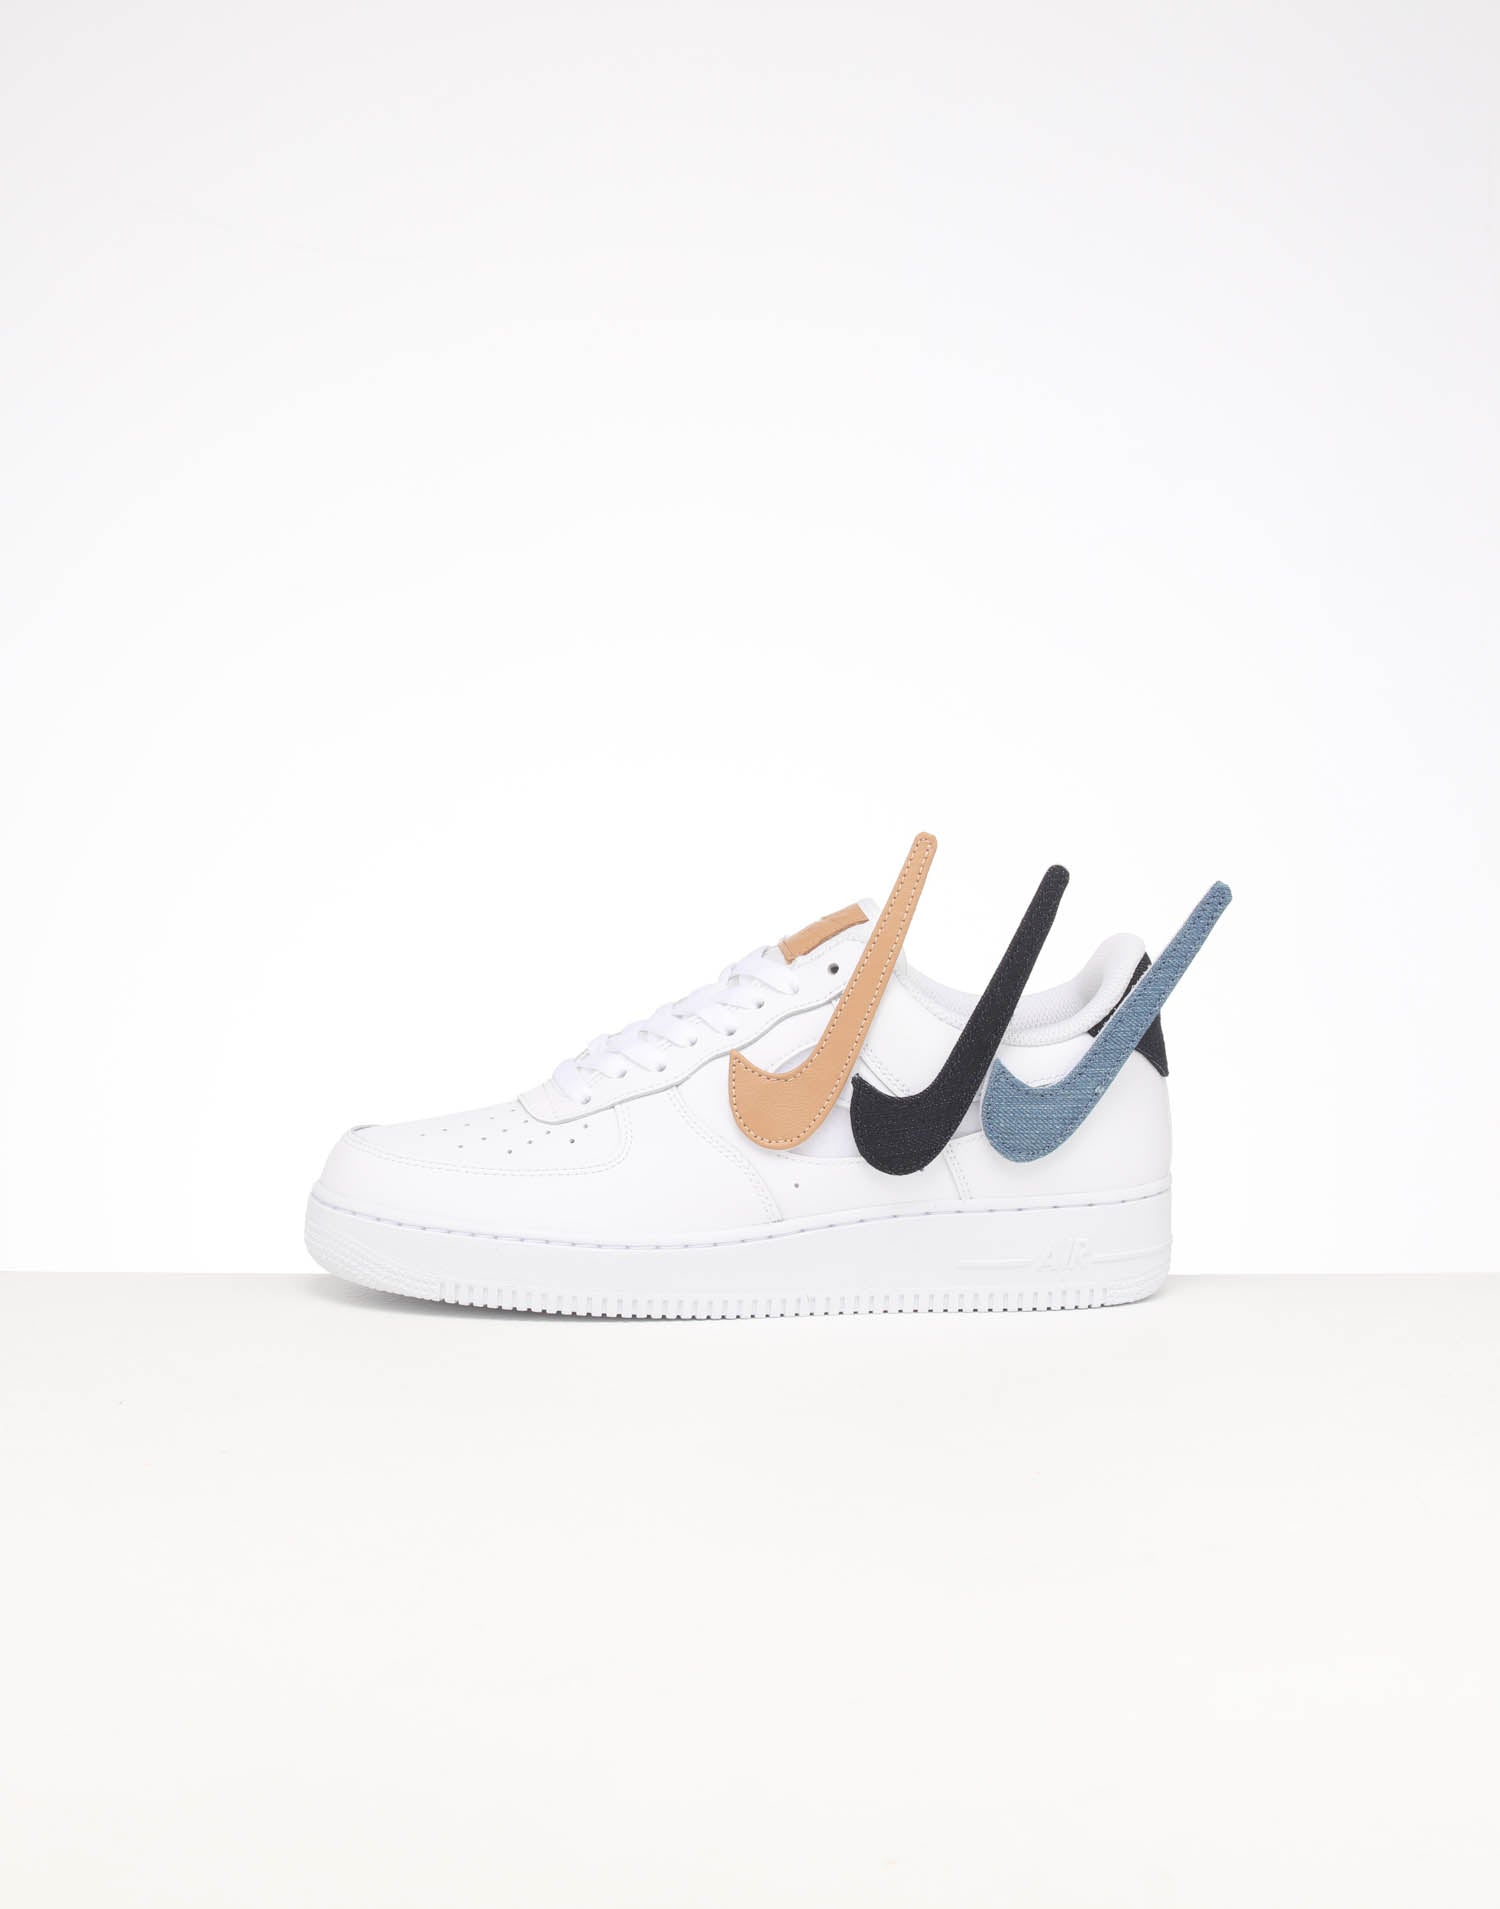 Nike Air Force 1 07 LV8 3 Reflective Camo White